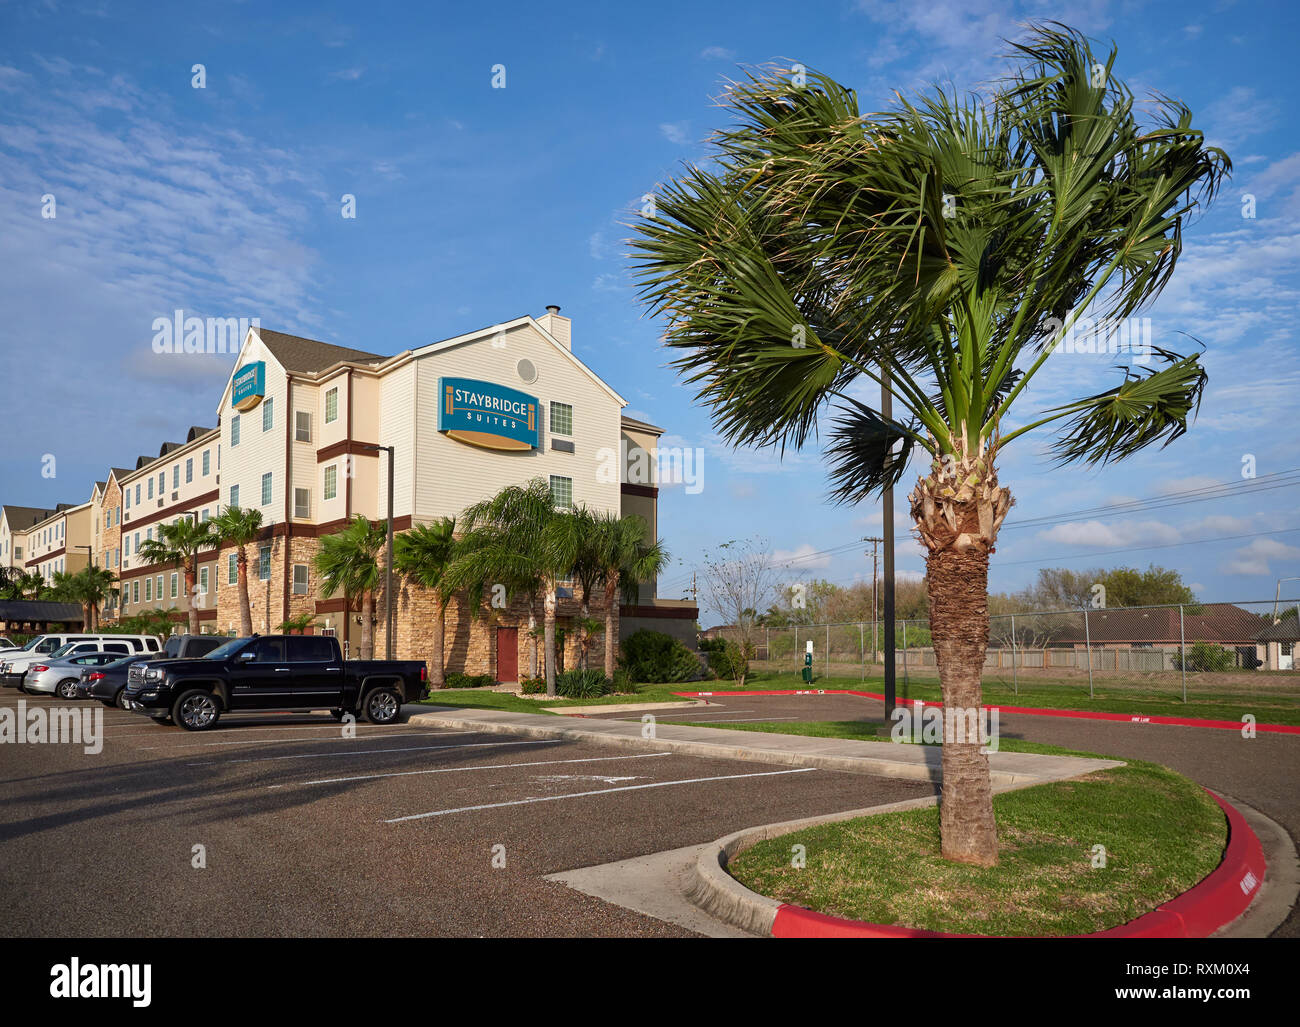 The Staybridge Suites Hotel in Brownsville, Texas on a windy bright January Afternoon. Brownsville, Texas, USA. - Stock Image